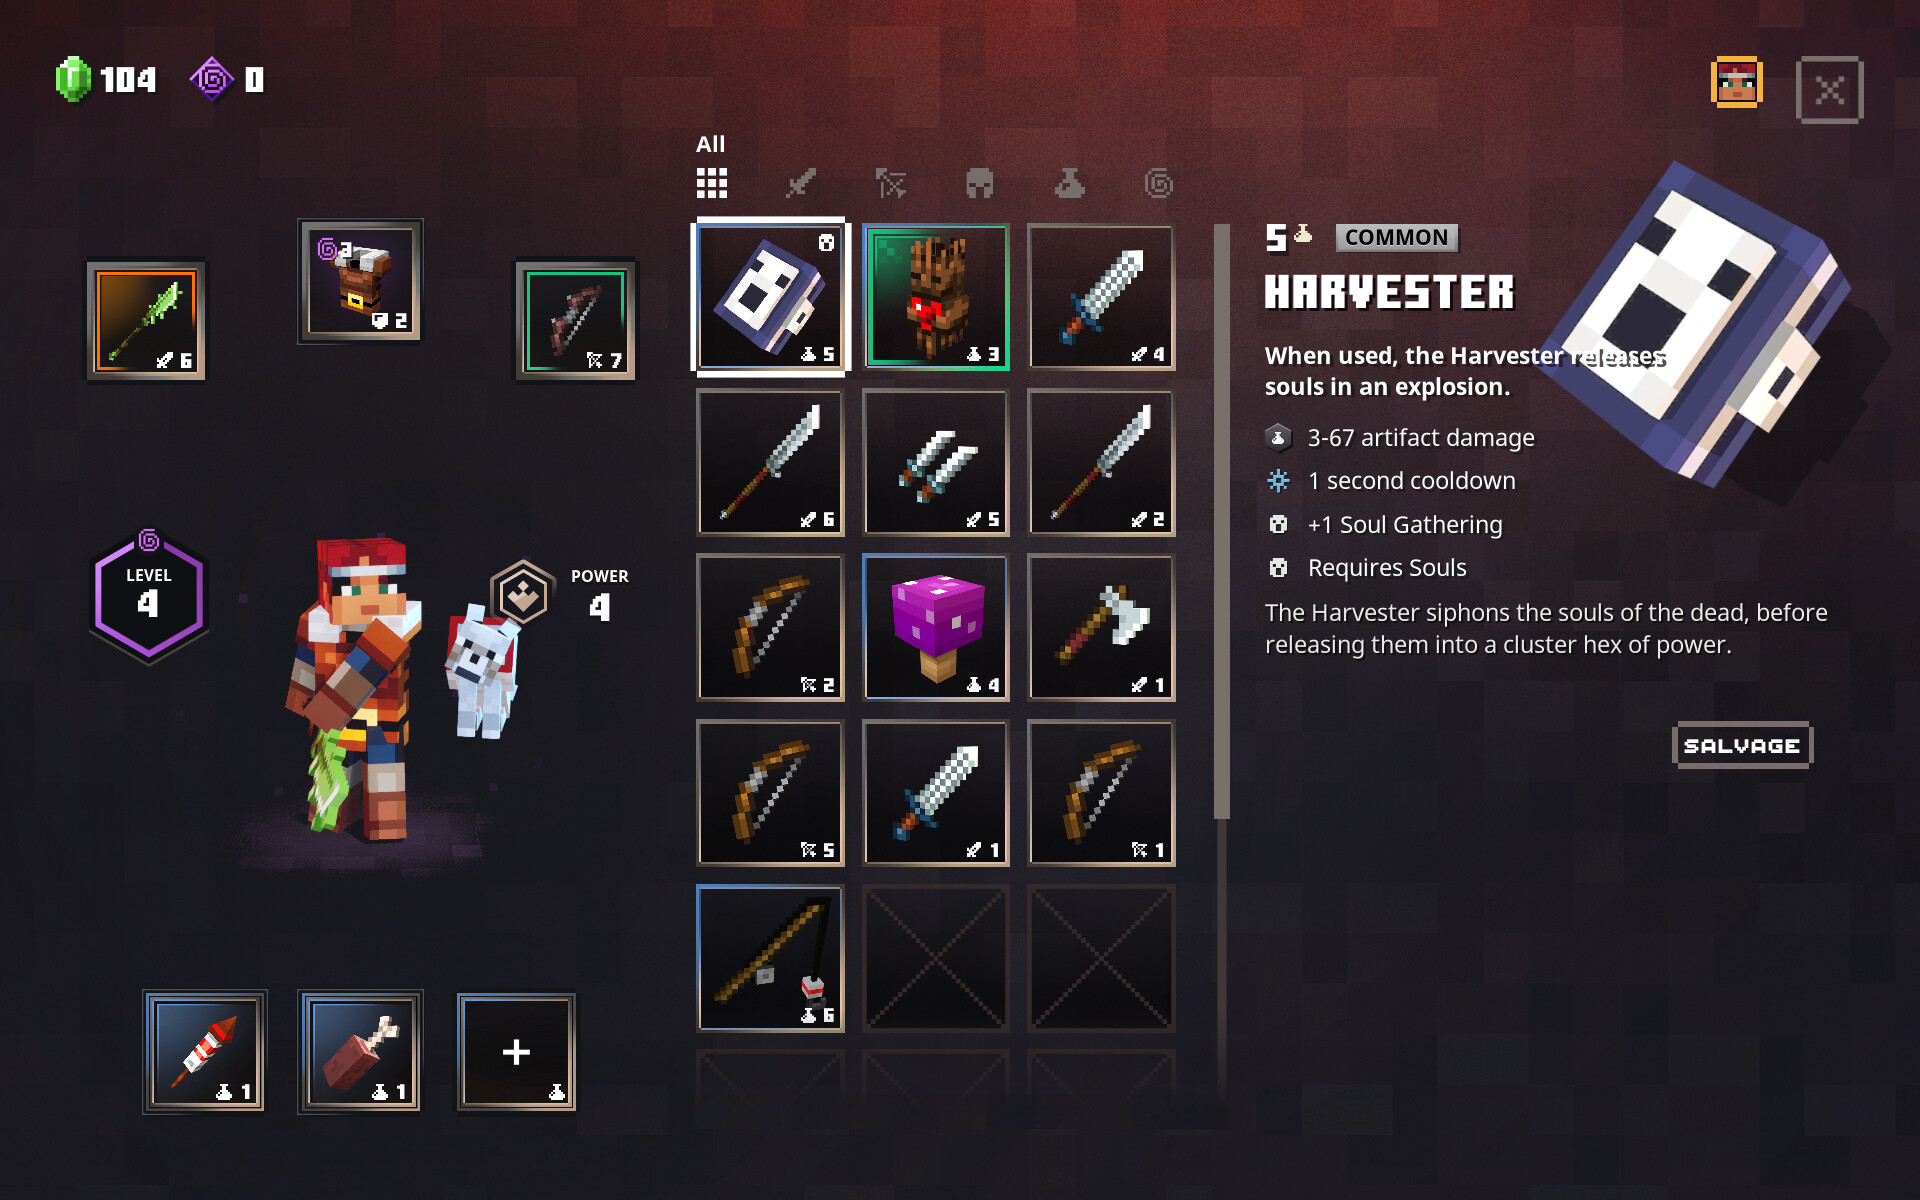 I helped render the Weapon/Armor/Artifact icons in the UI